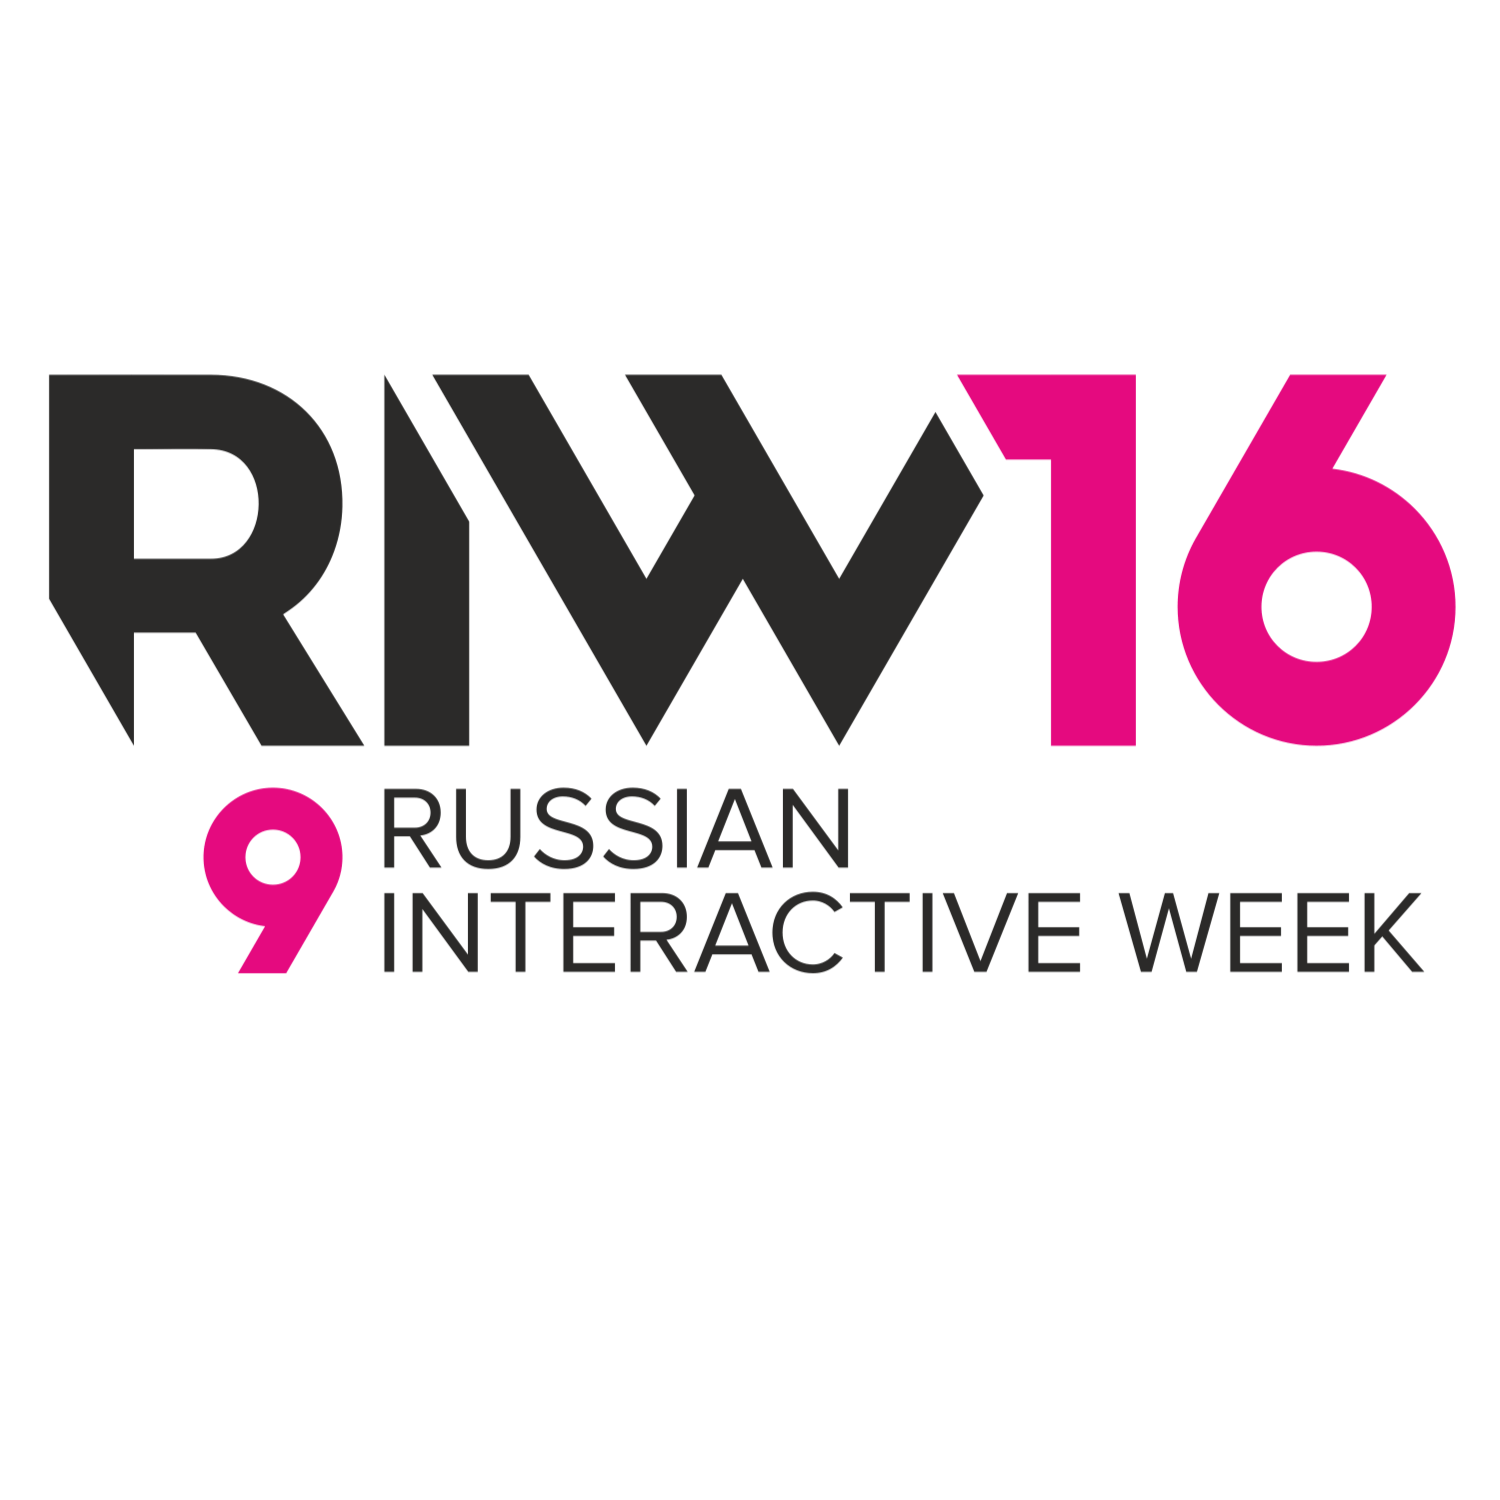 Russian Interactive Week 2016